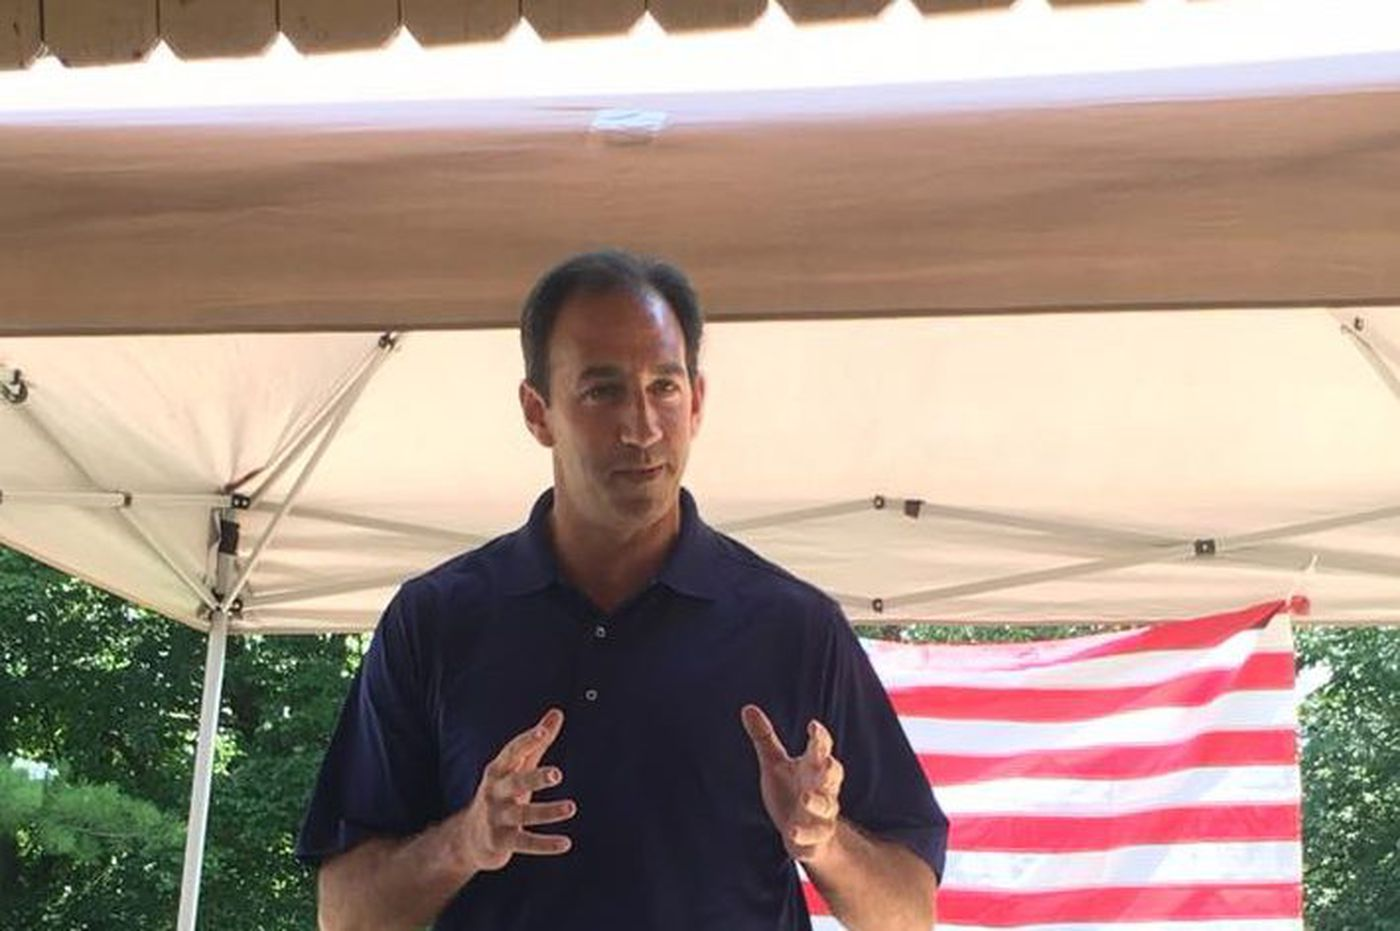 In shake-up, Pennsylvania GOP Senate candidate to run for Lt. Gov., join Wagner ticket